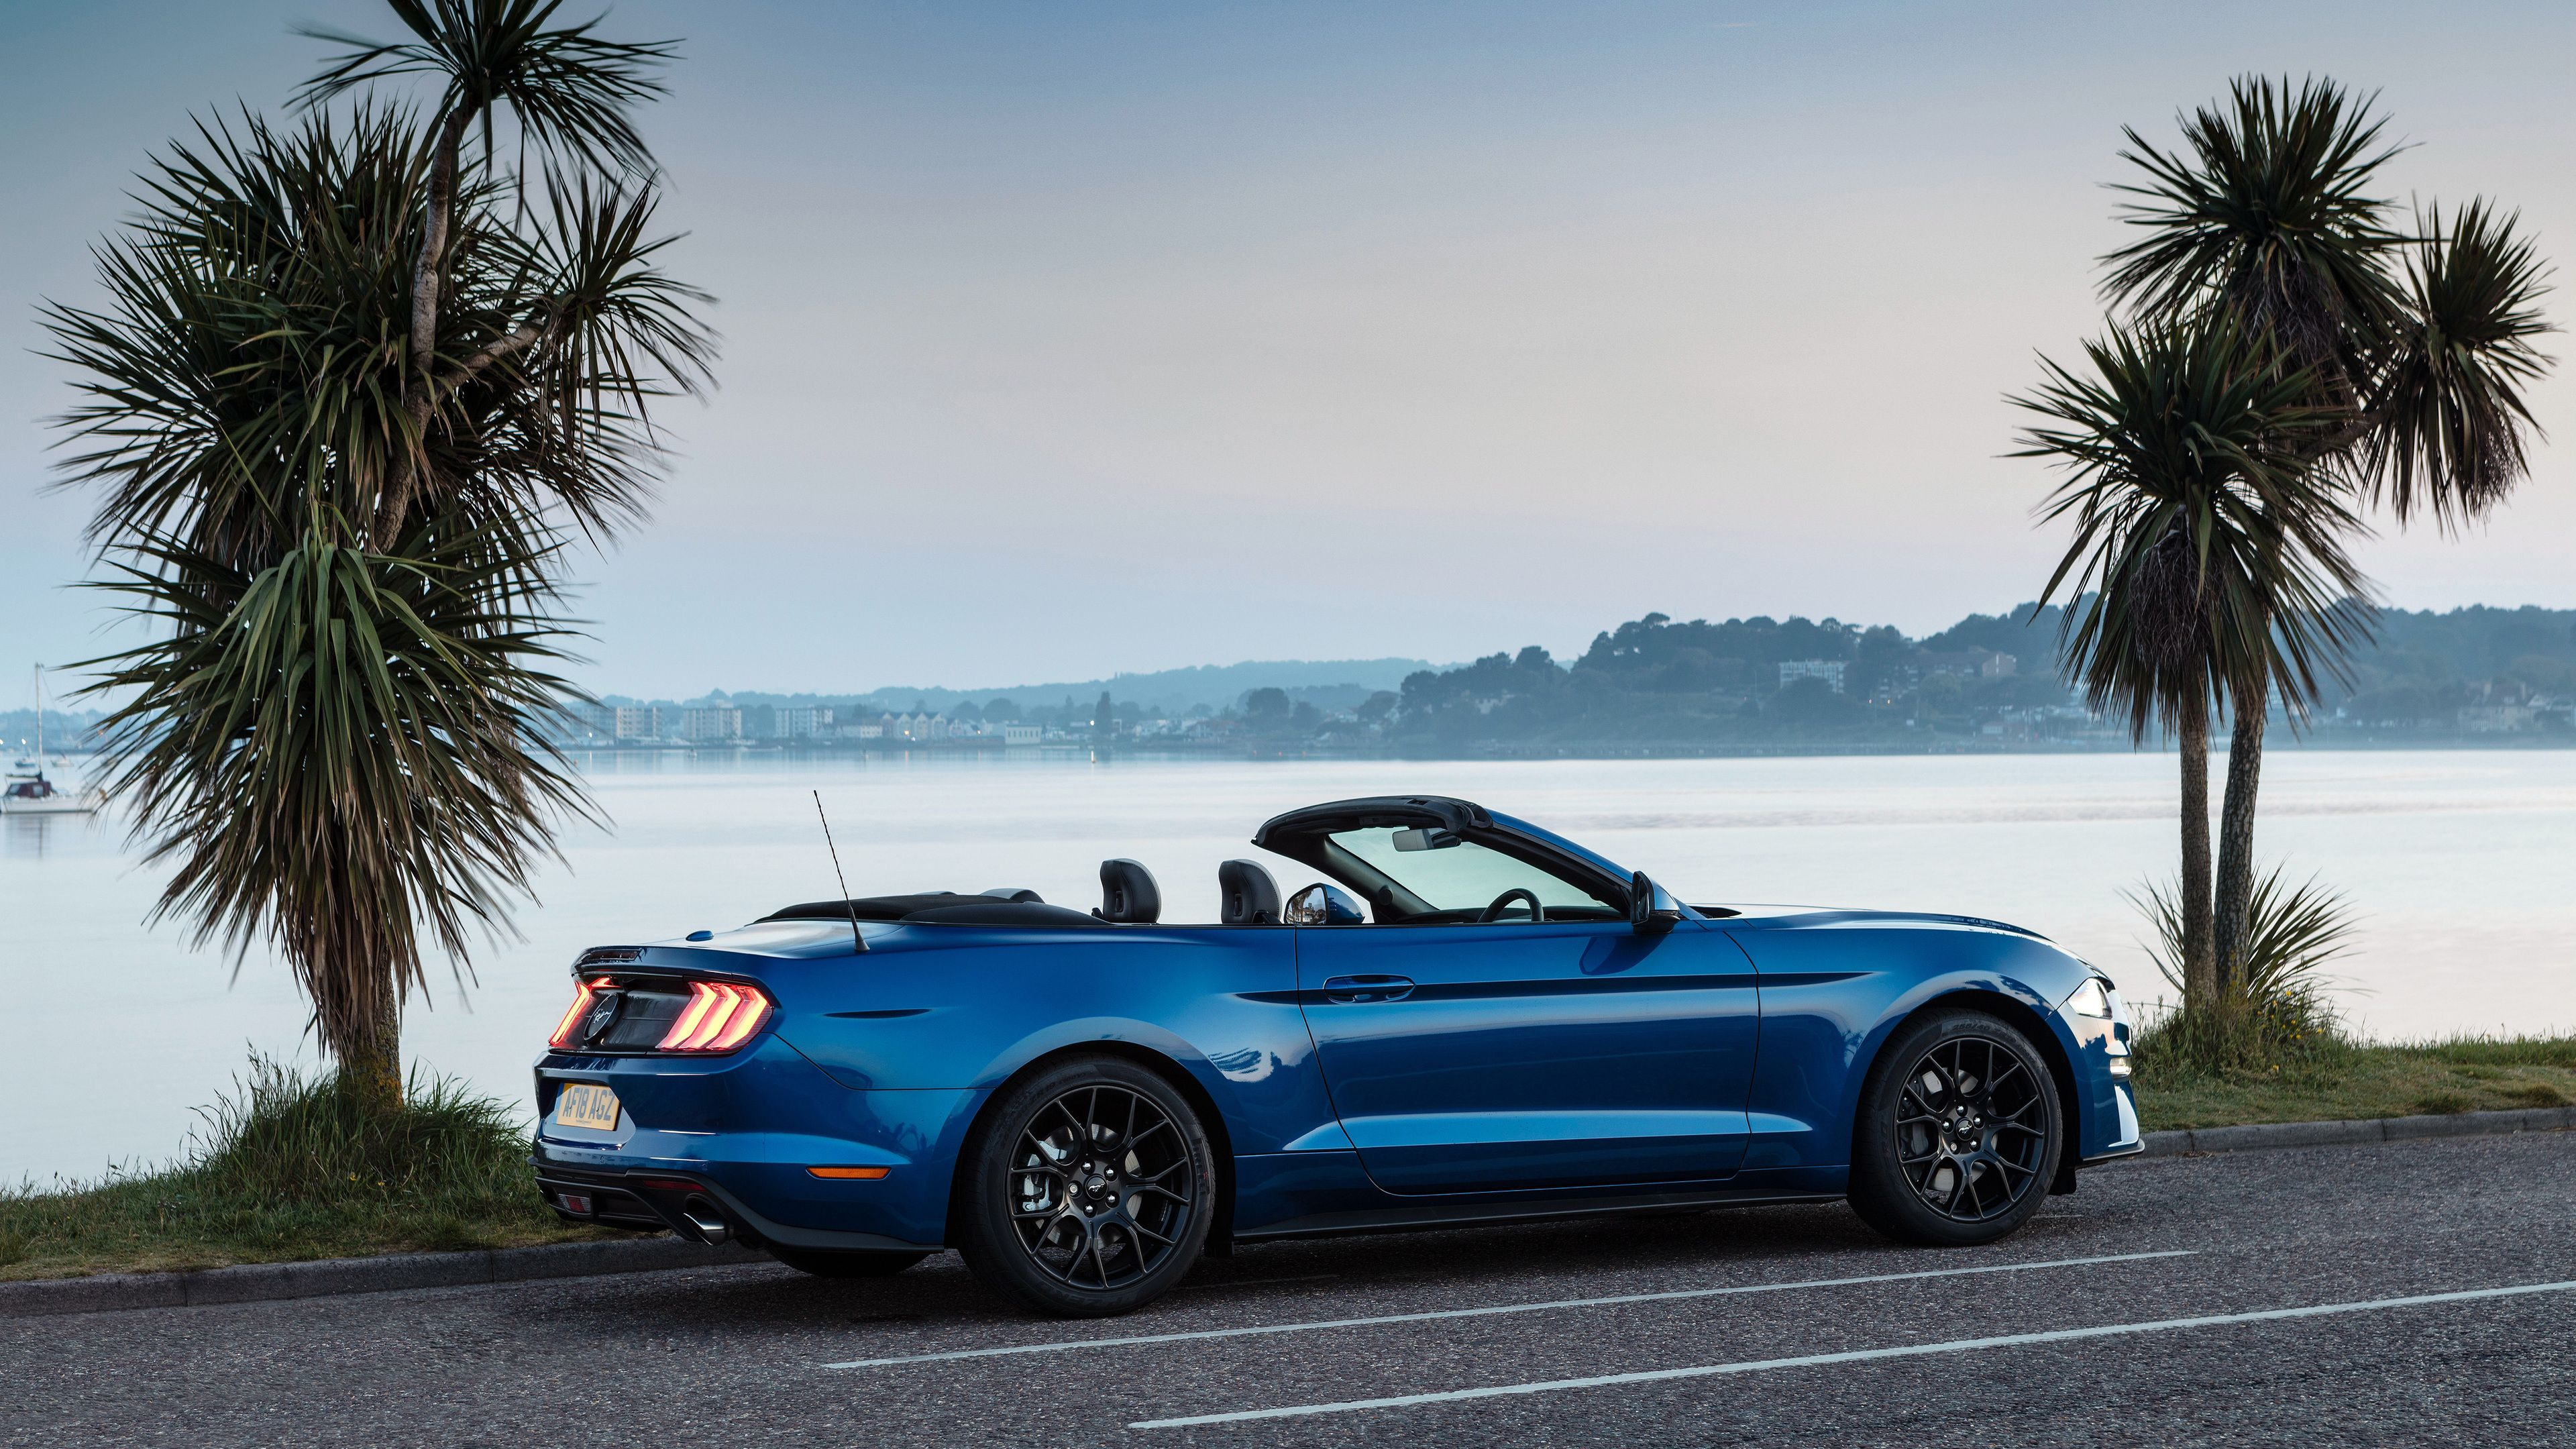 Ford Mustang Ecoboost Convertible 2018 Mustang Wallpapers Hd